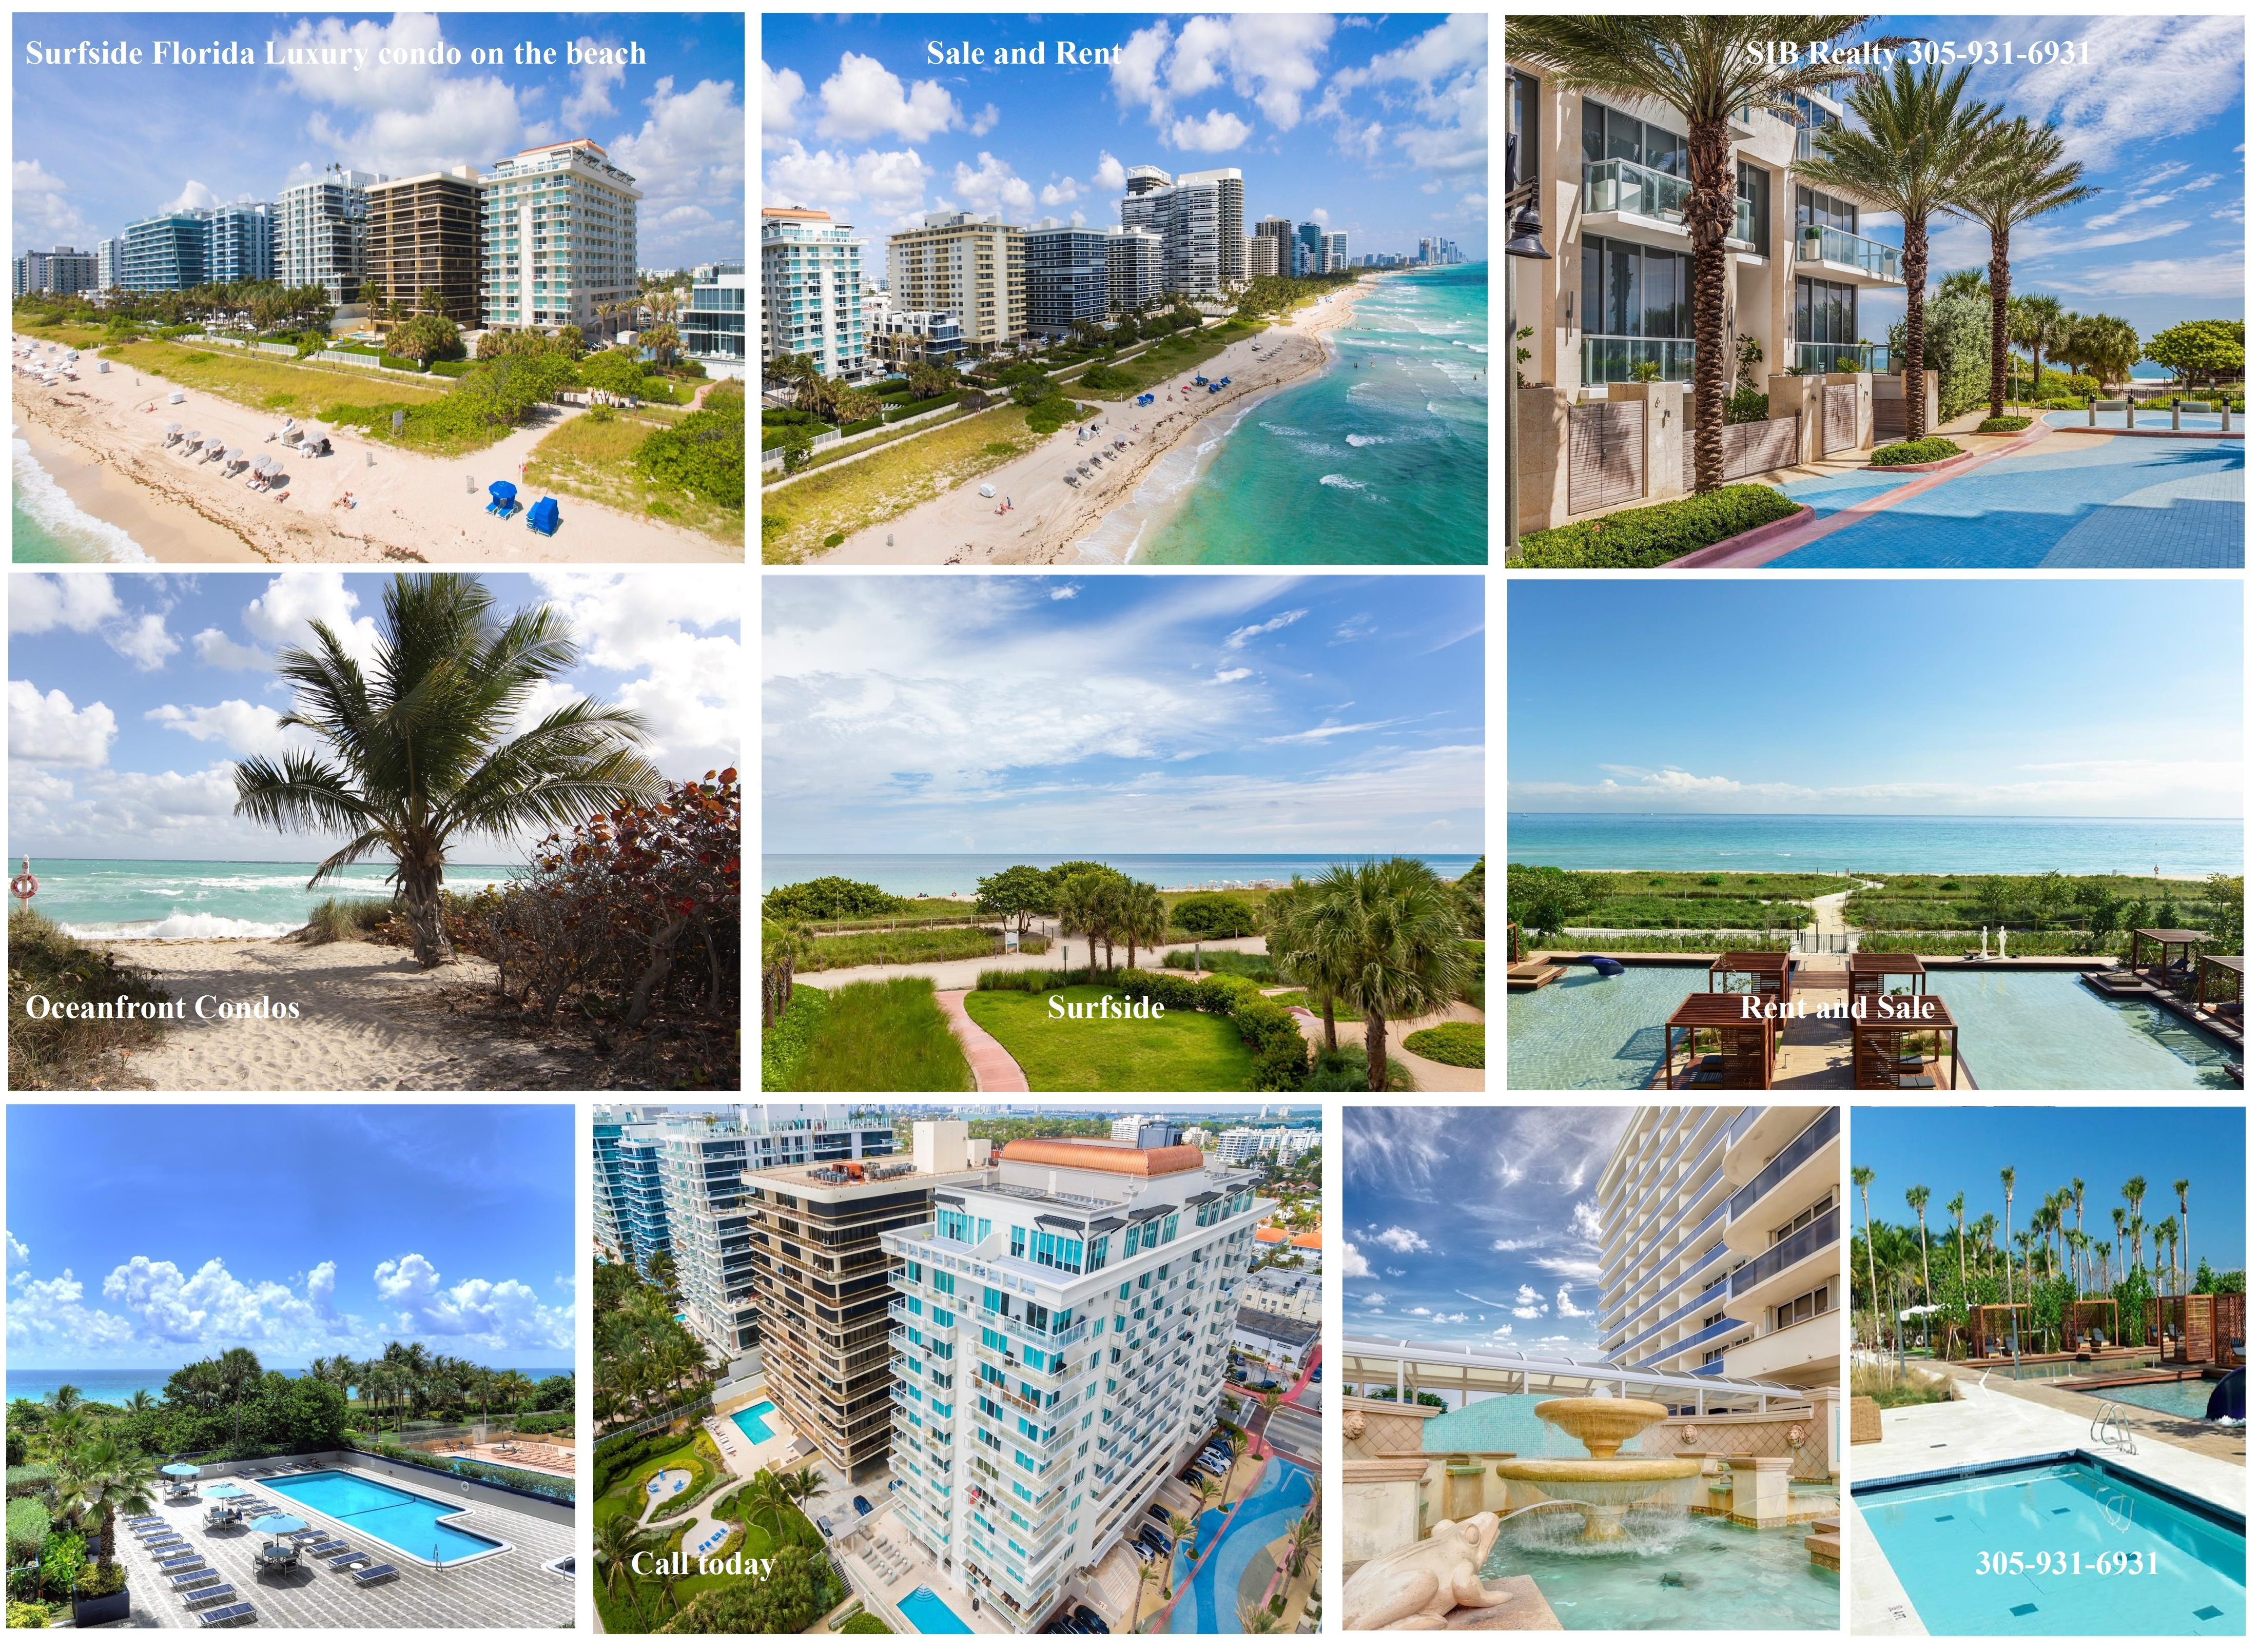 Surfside Condo for Sale with SIB Realty